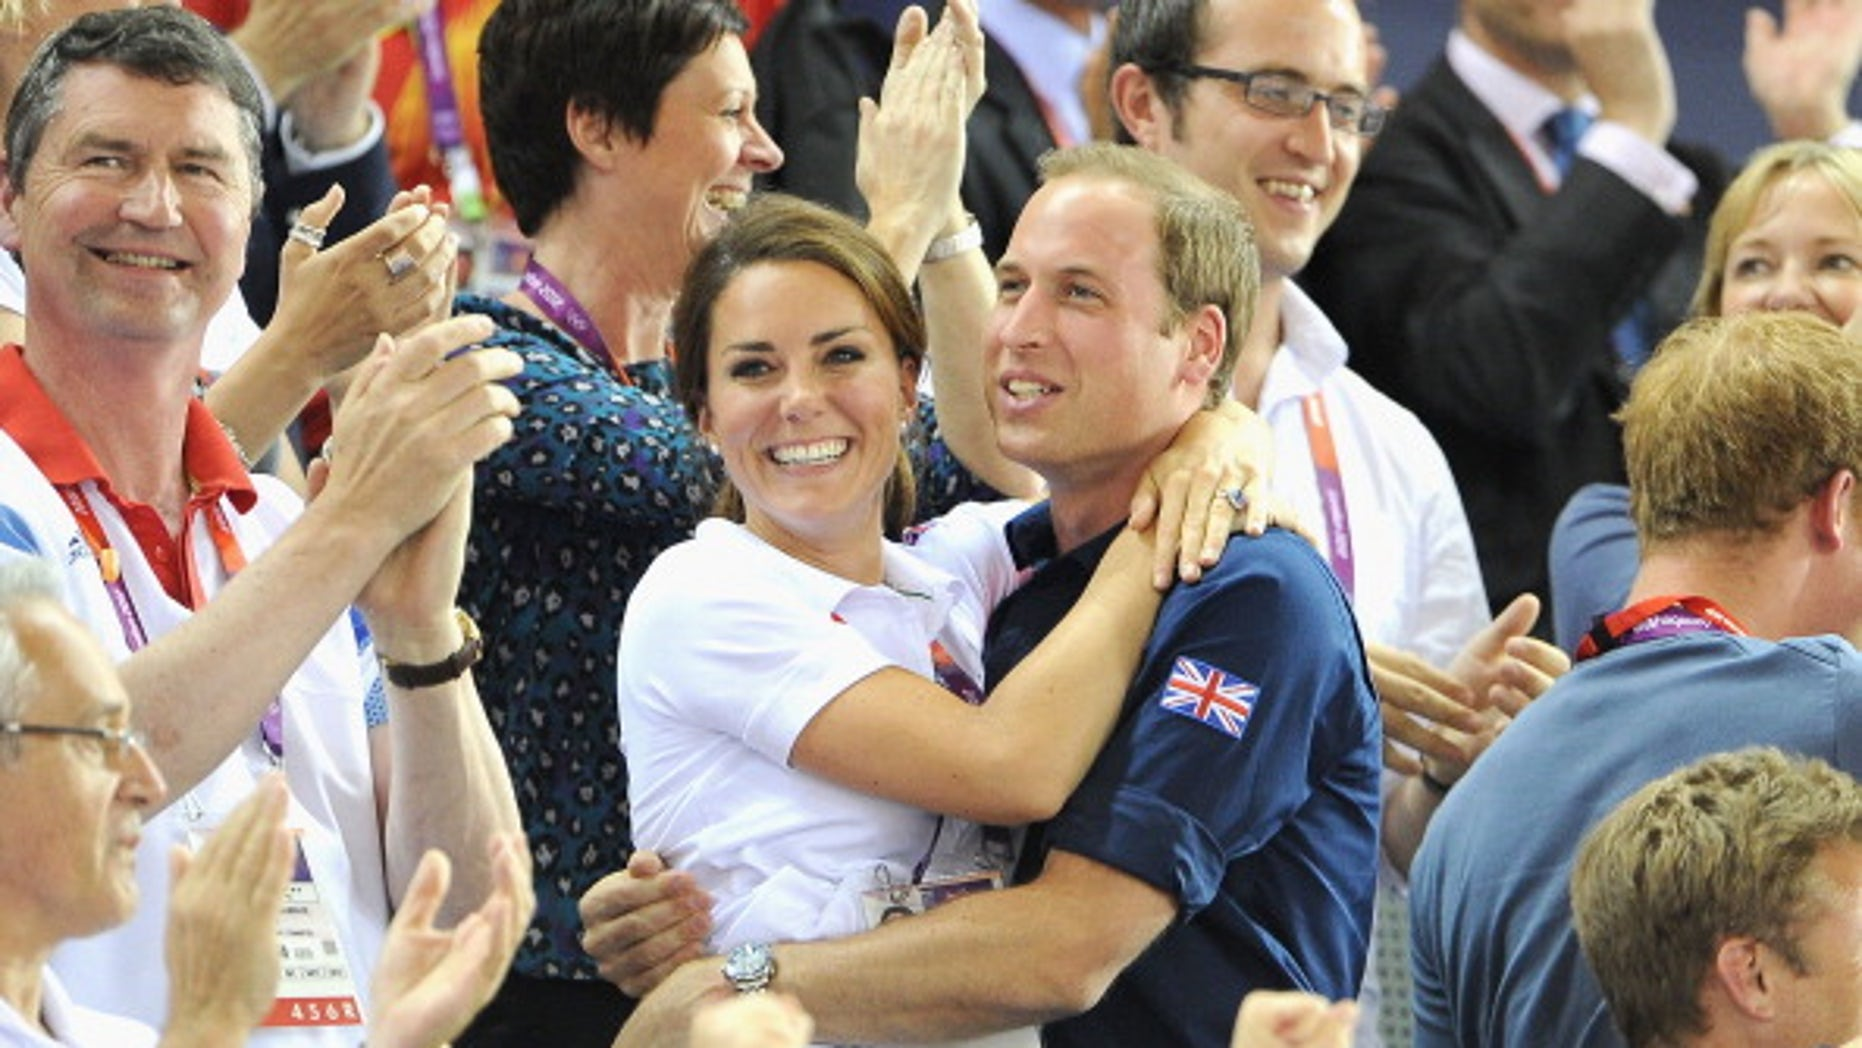 Catherine, Duchess of Cambridge and Prince William, Duke of Cambridge during Day 6 of the London 2012 Olympic Games.